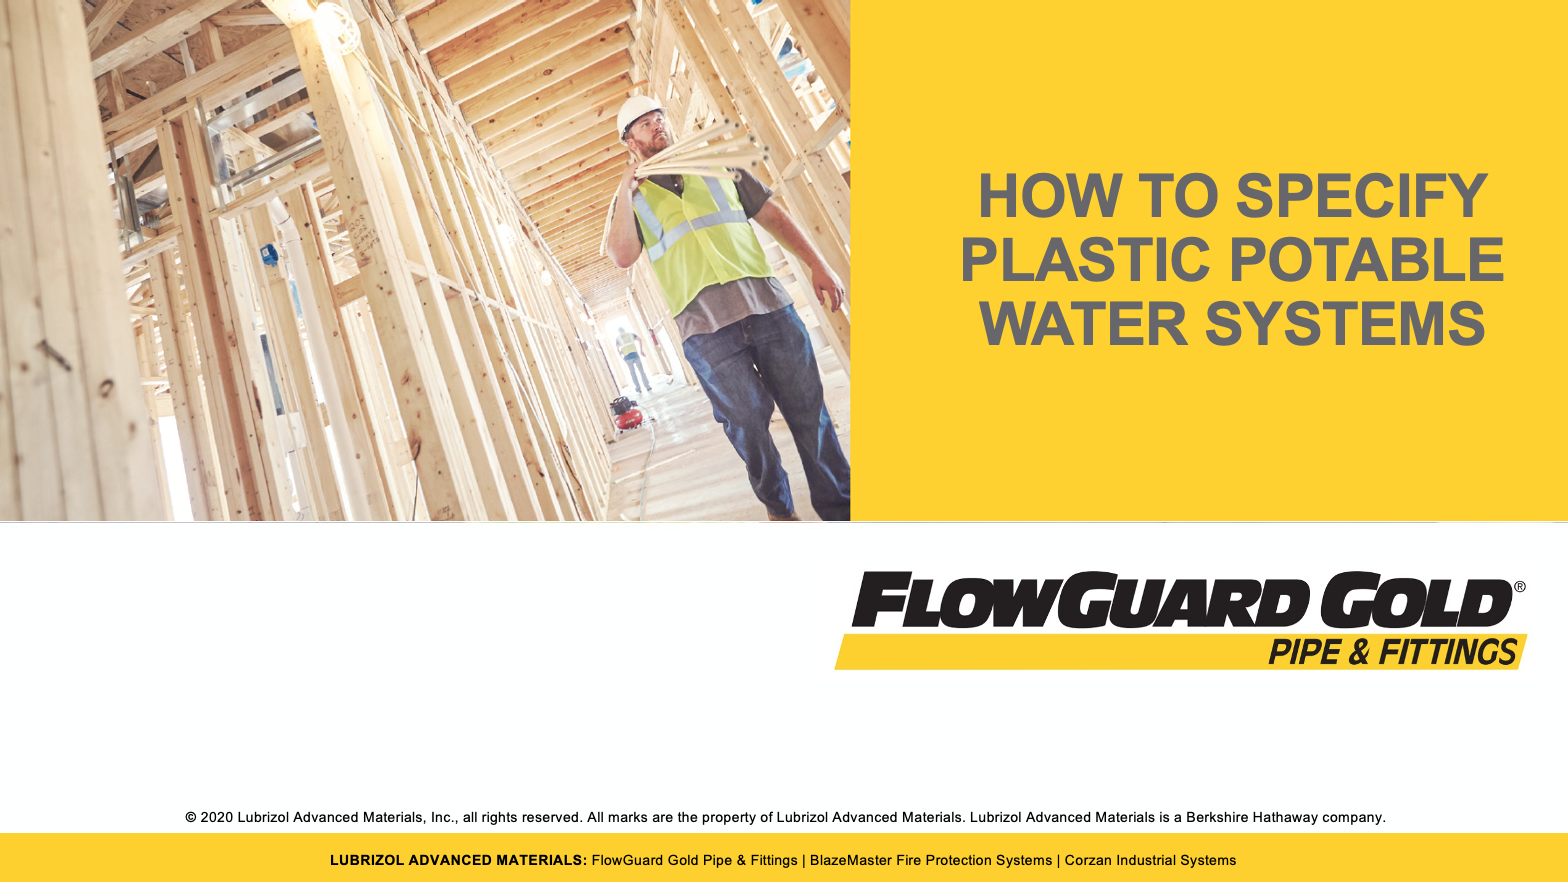 FlowGuard Gold - How to Specify Plastic Potable Water Systems